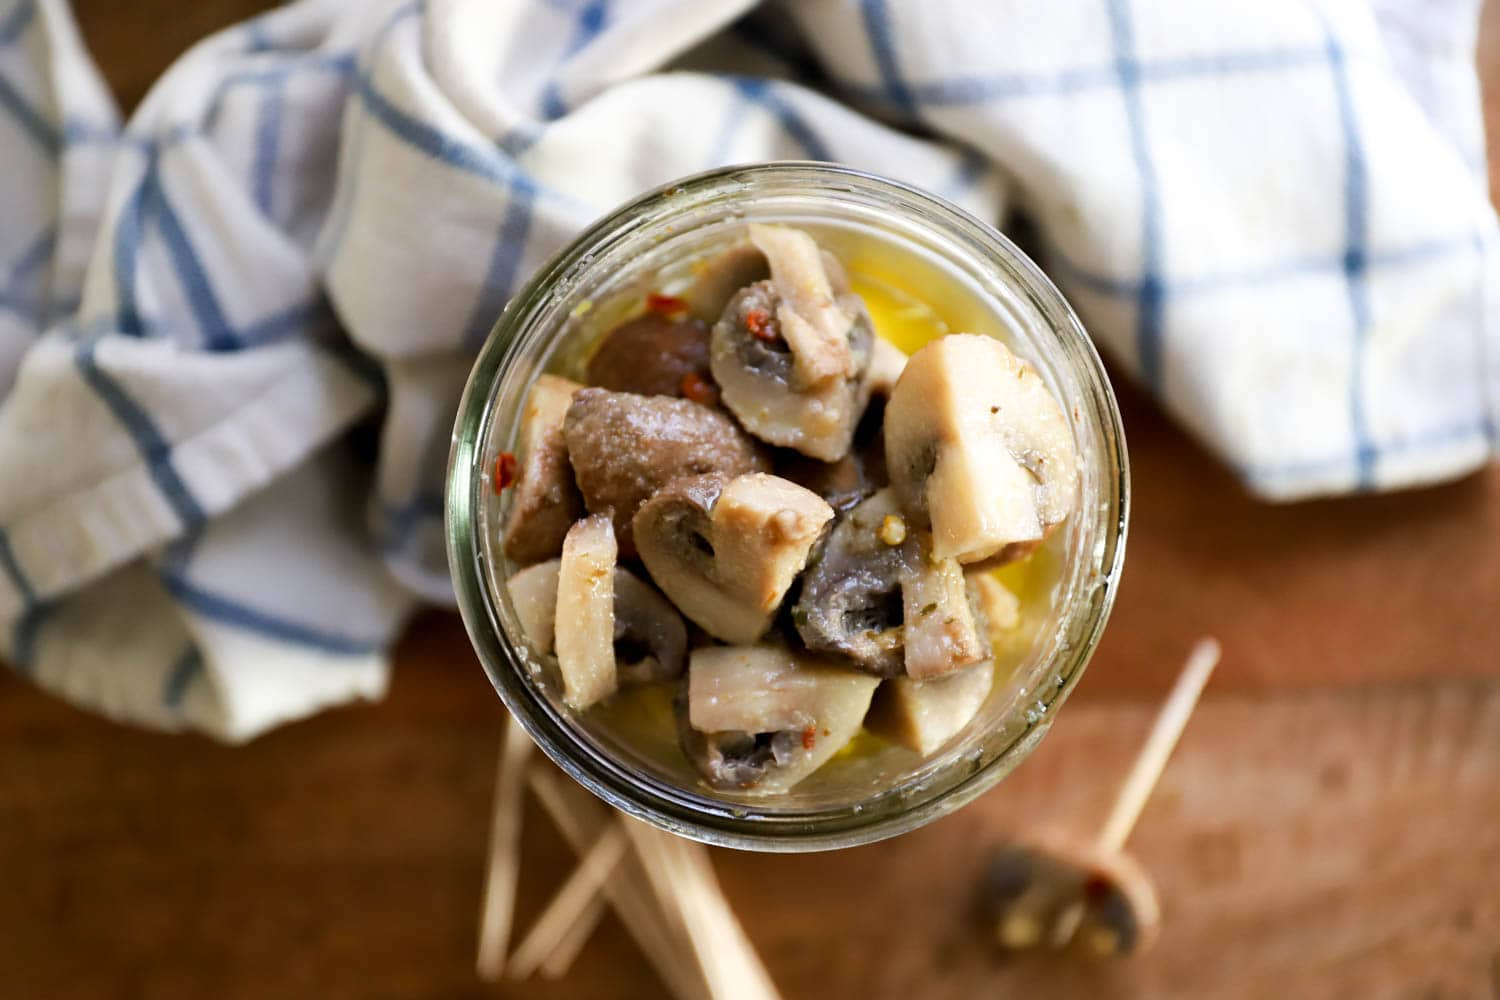 jar of pickled raw mushrooms with a blurry napkin in the background.